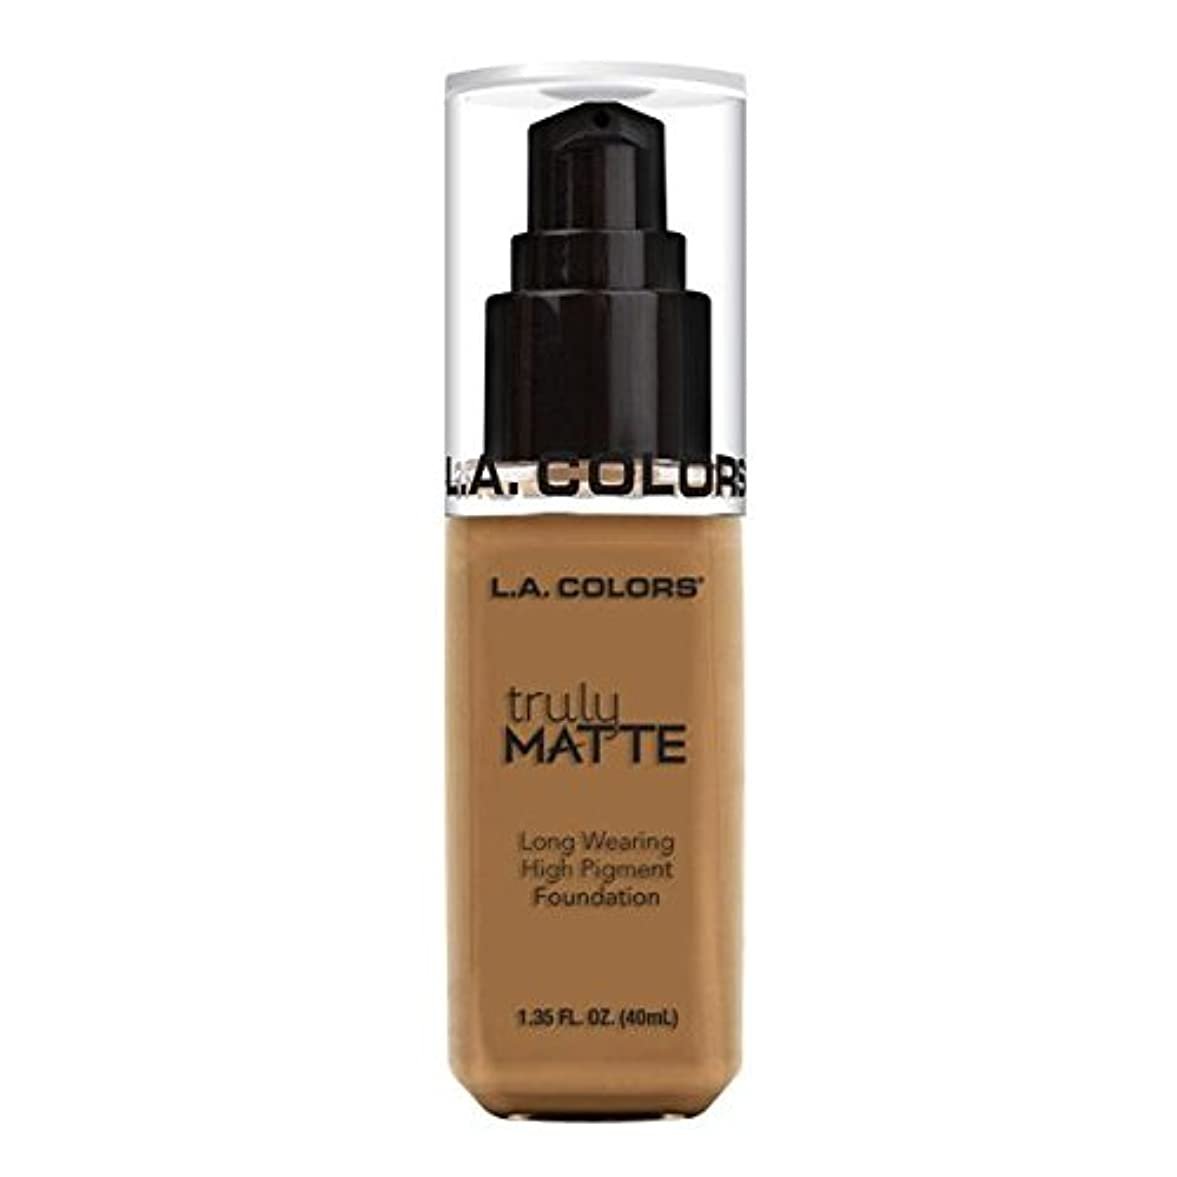 作り上げるダッシュ干渉(6 Pack) L.A. COLORS Truly Matte Foundation - Warm Caramel (並行輸入品)